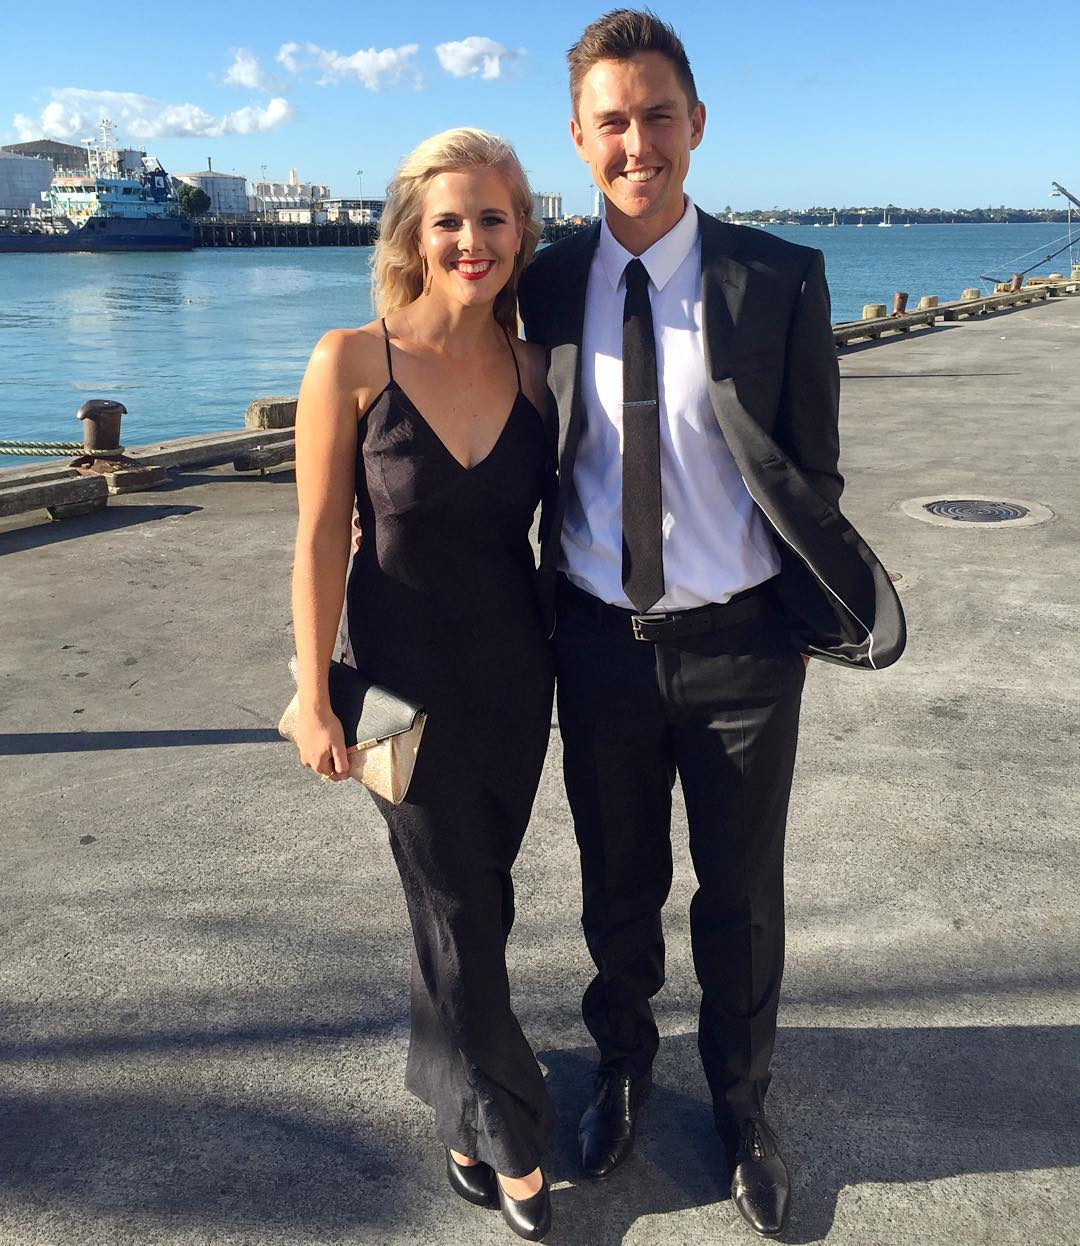 trent boult wife name is gert smith